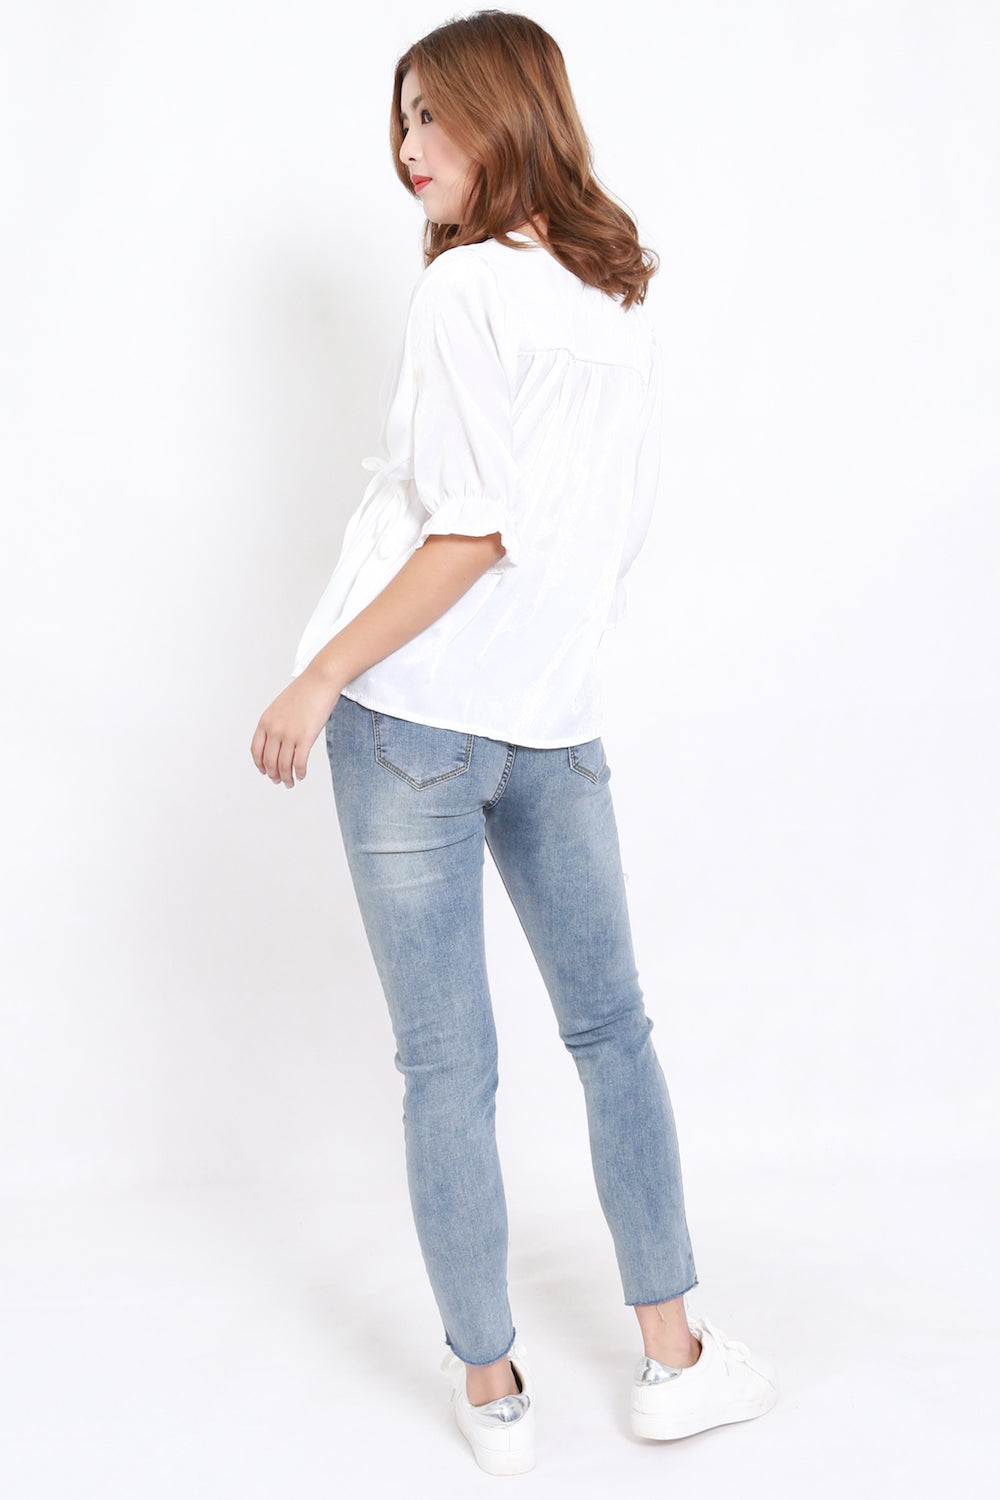 Velvet Buttons Shirt (White)